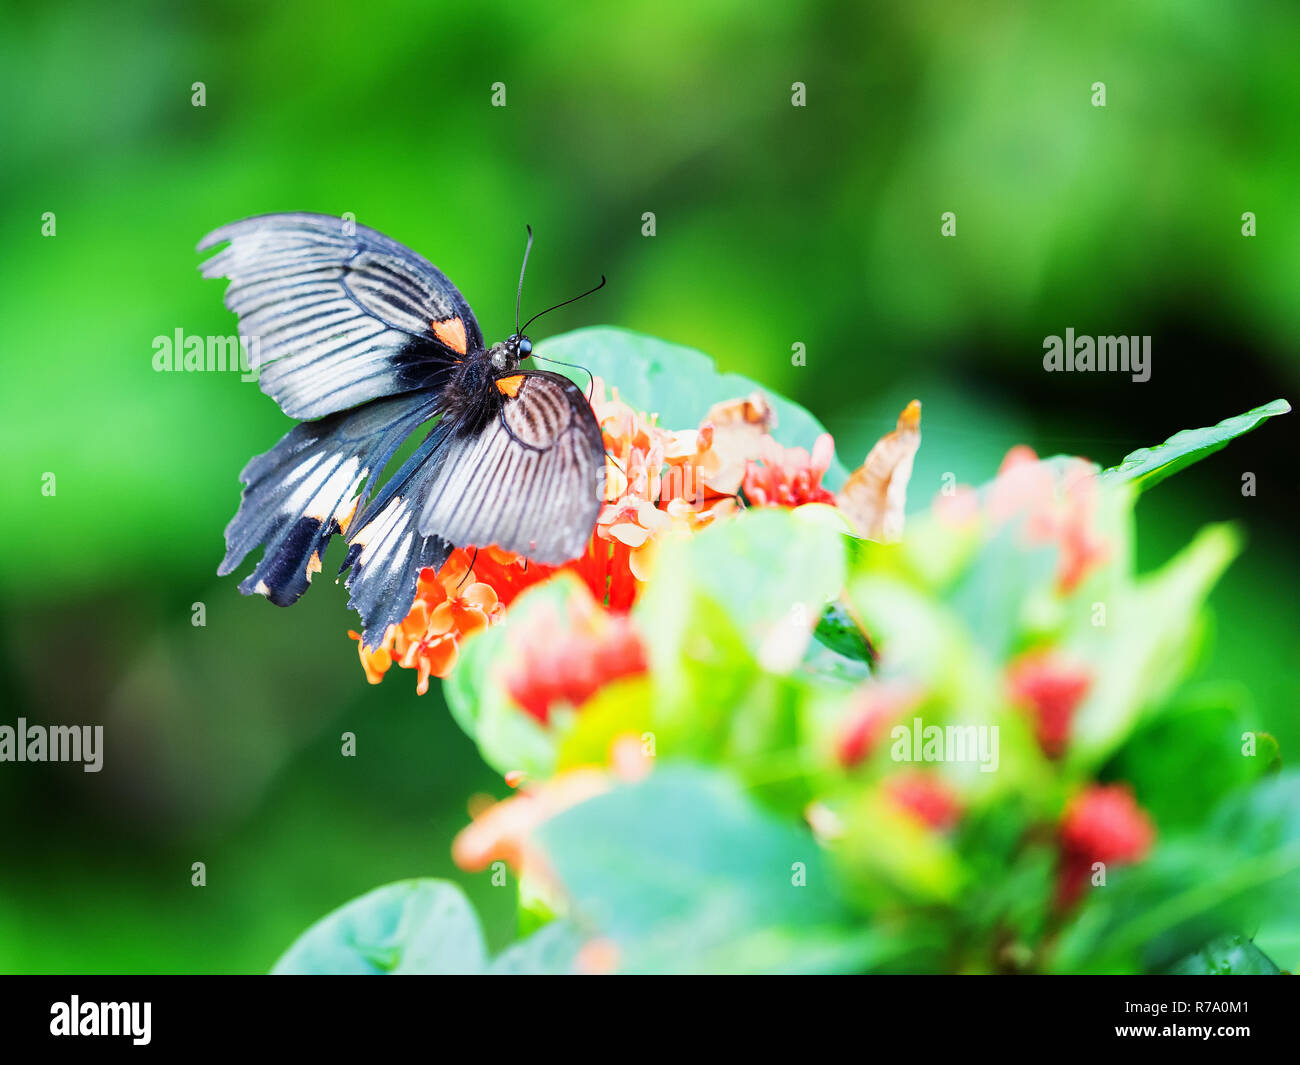 A swallowtail butterfly rests on a leaf in Yakushima, Japan. Stock Photo